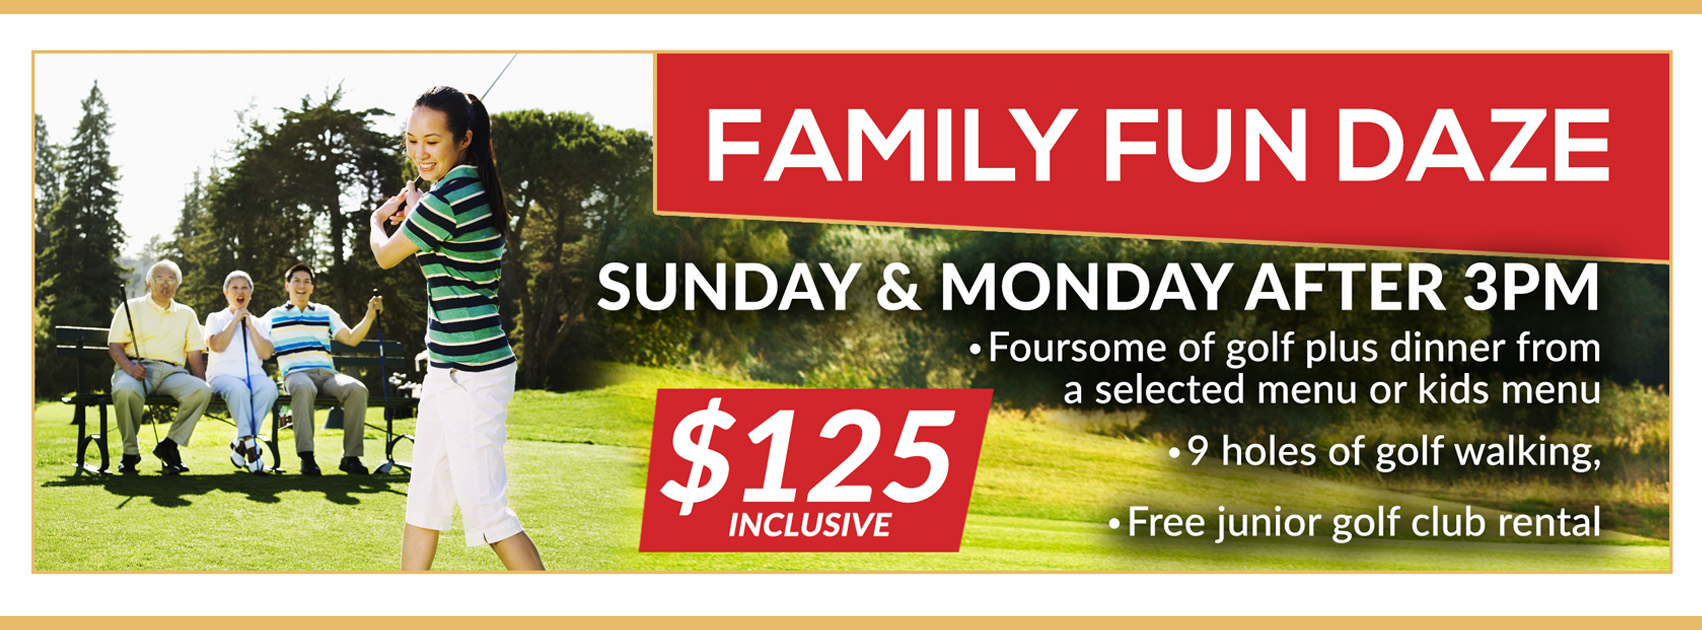 Family Fun Daze - Sunday & Monday after 3pm. Foursome of gold plus dinner from a selected menu or kids menu; 9 holes of golf walking; Free junior golf club rental. $125 inclusive.